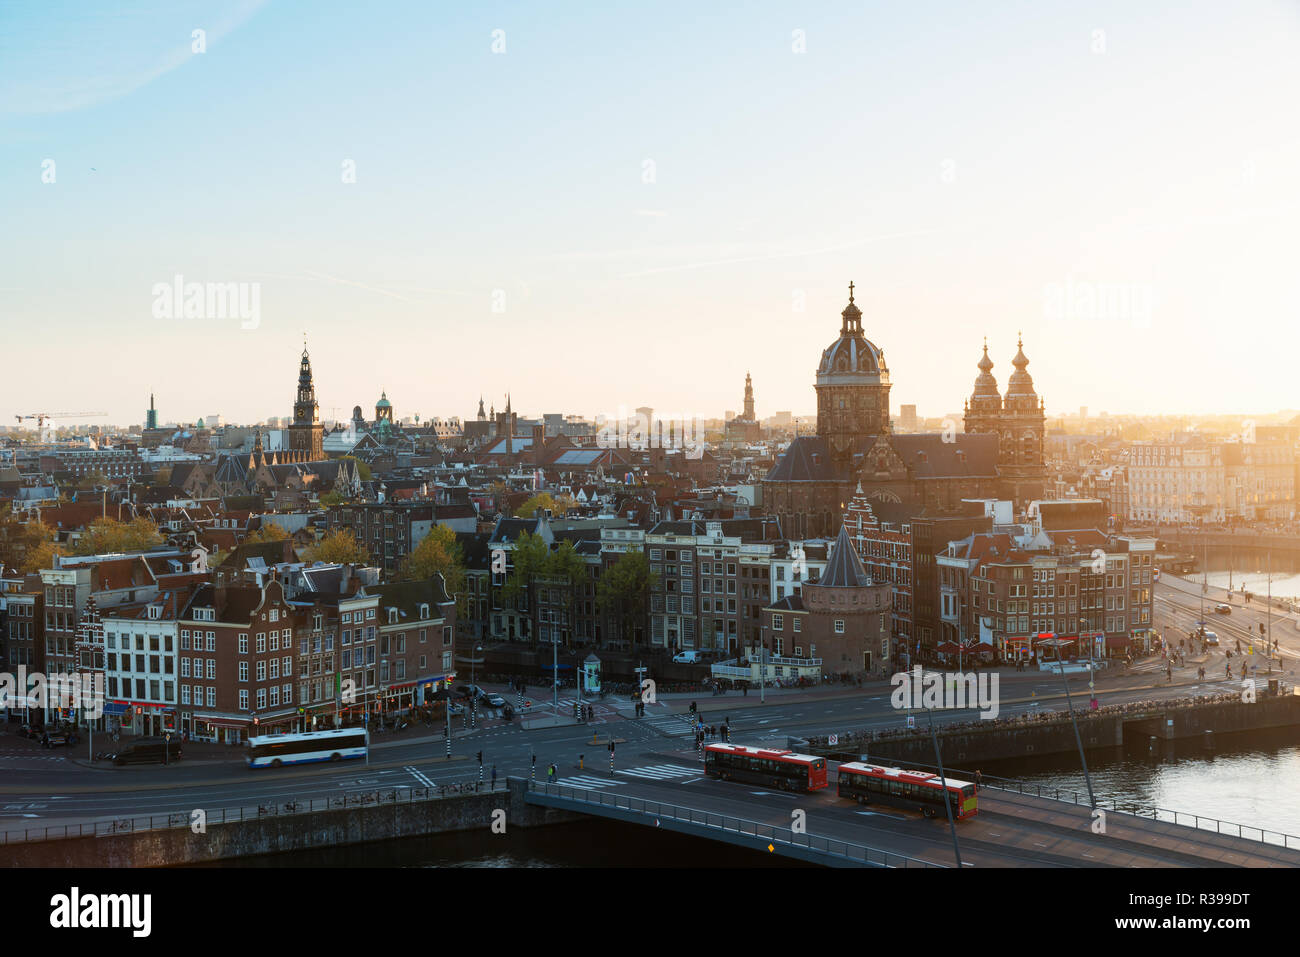 Amsterdam skyline in historical area at night, Amsterdam, Netherlands. Aerial view of Amsterdam, Netherlands. - Stock Image